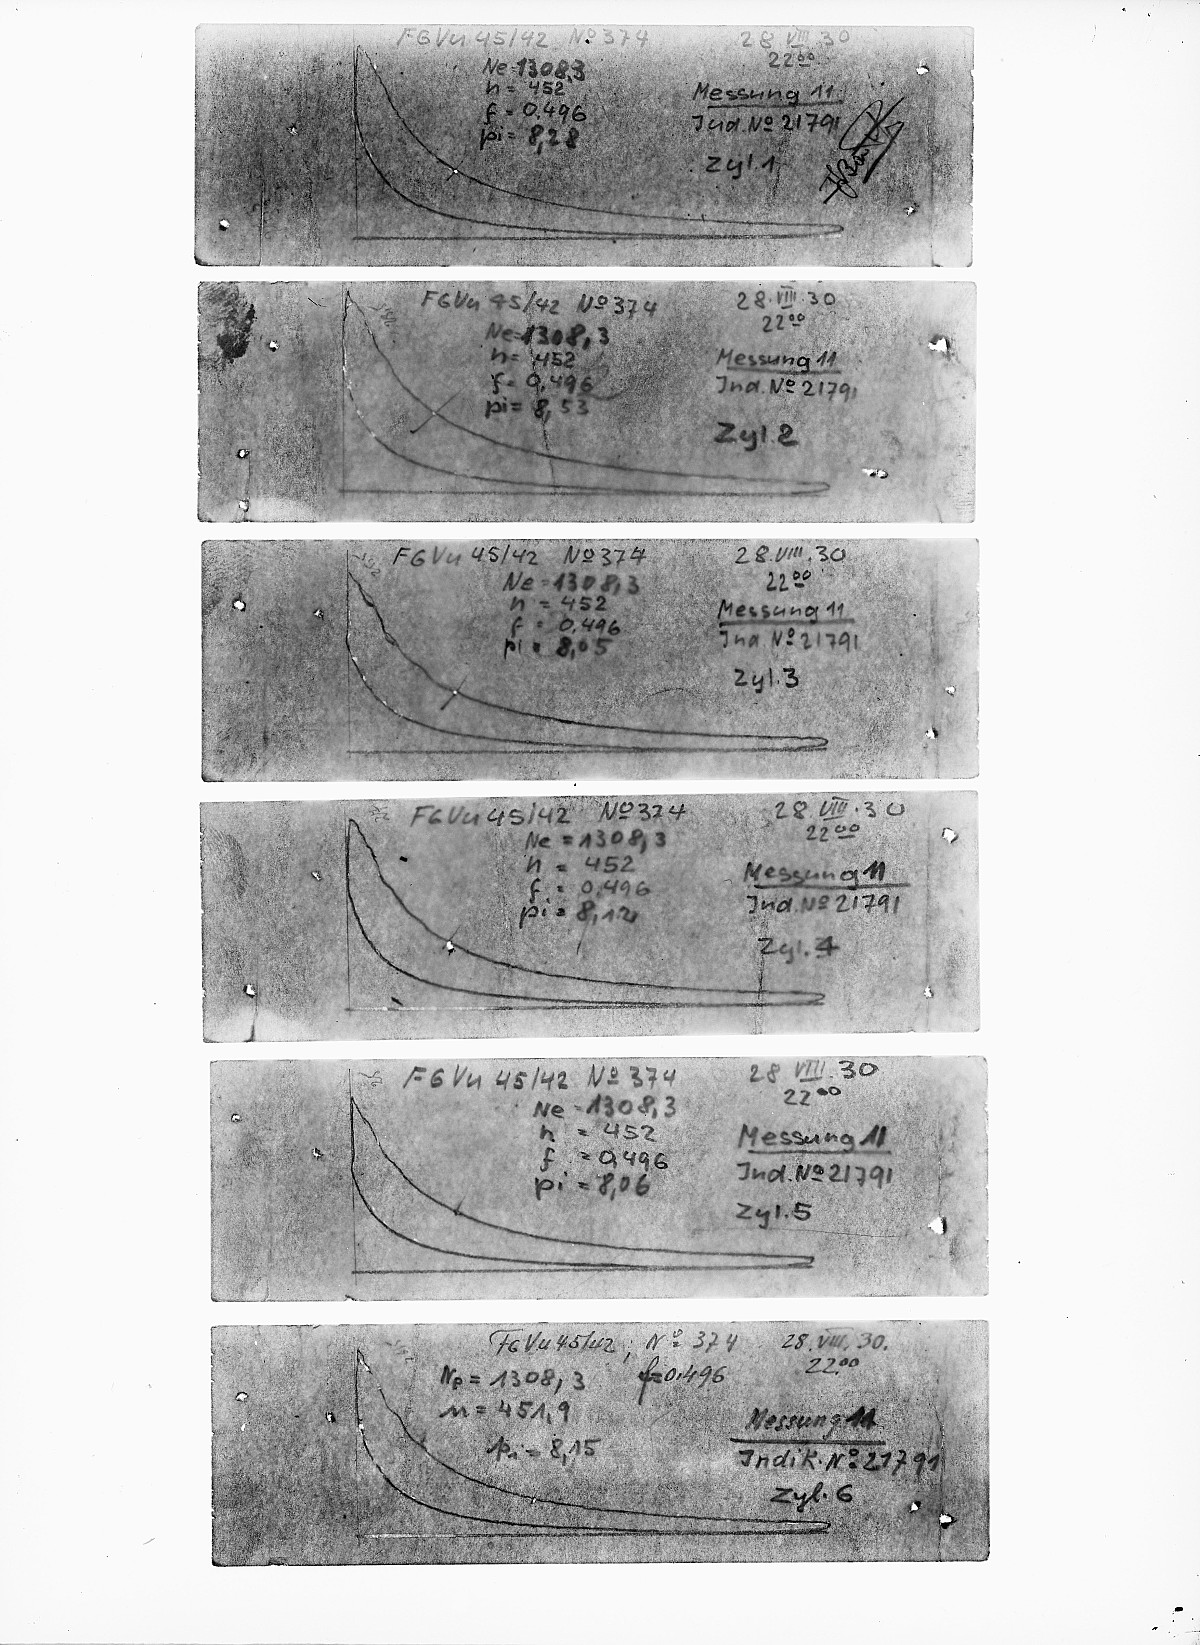 GFA 16/15191: Diagrams in the acceptance reports of GOMZY-LENINGRAD engine